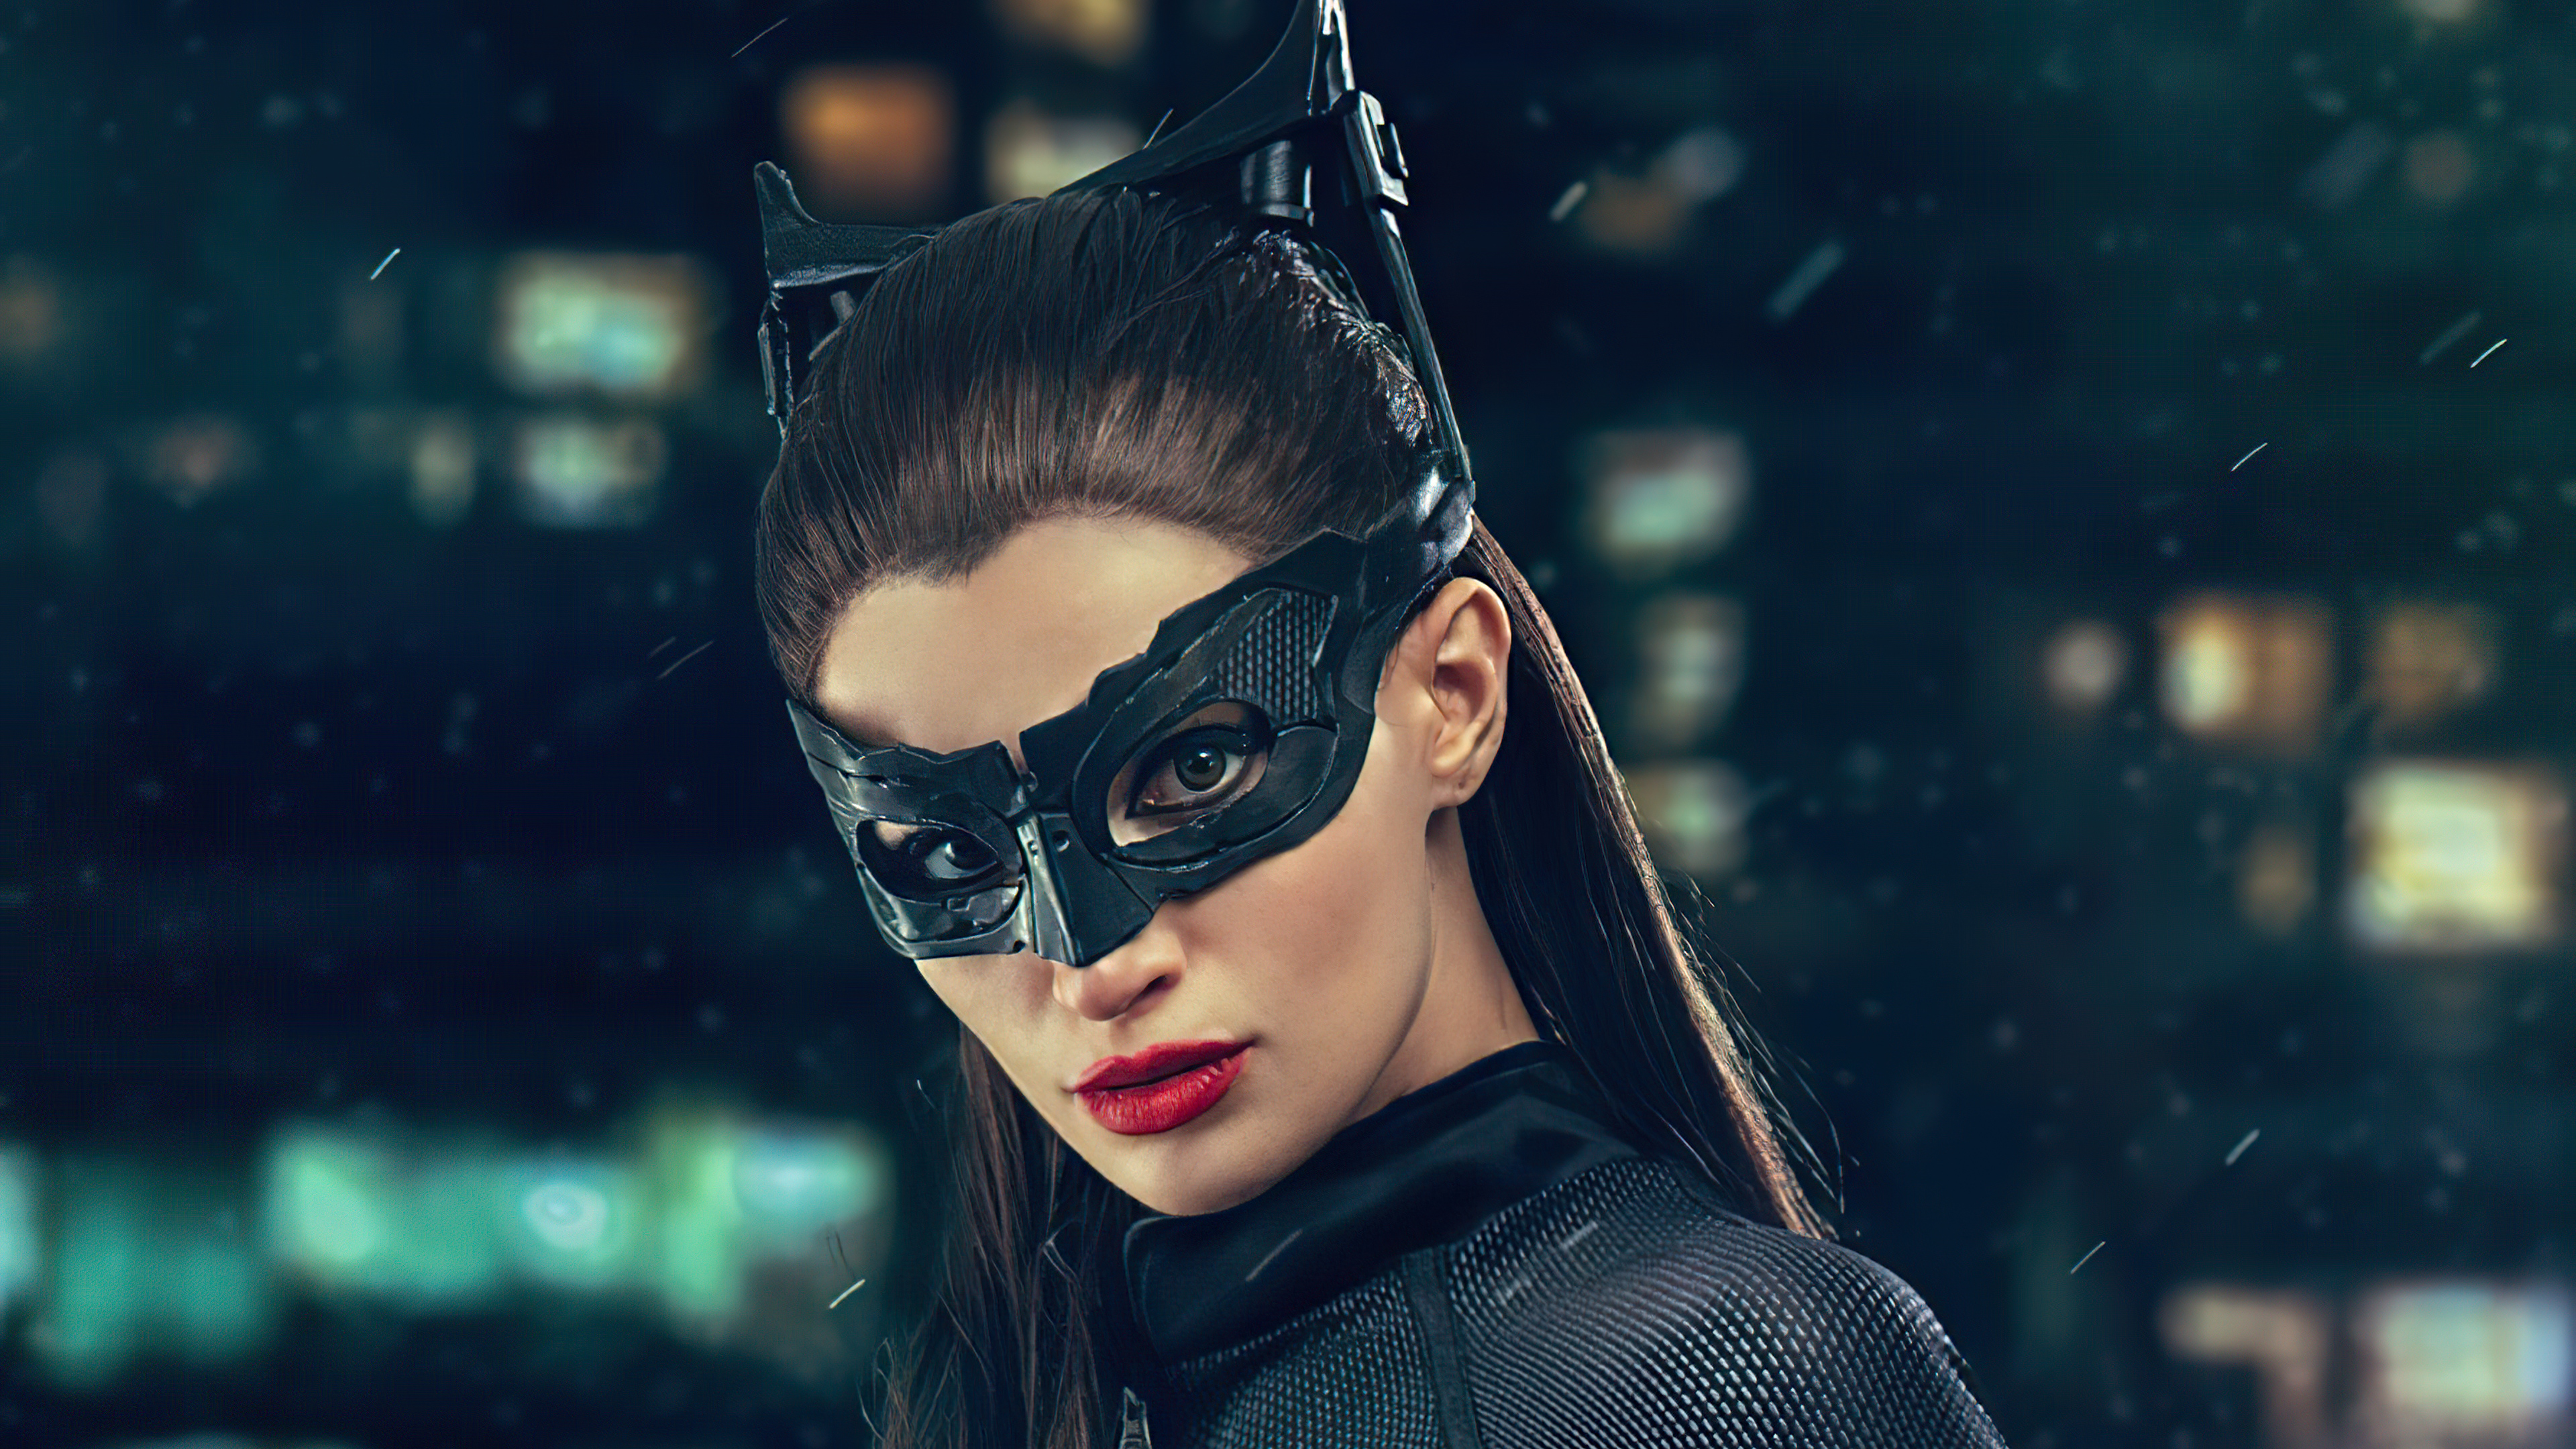 Wallpaper Catwoman Cosplay